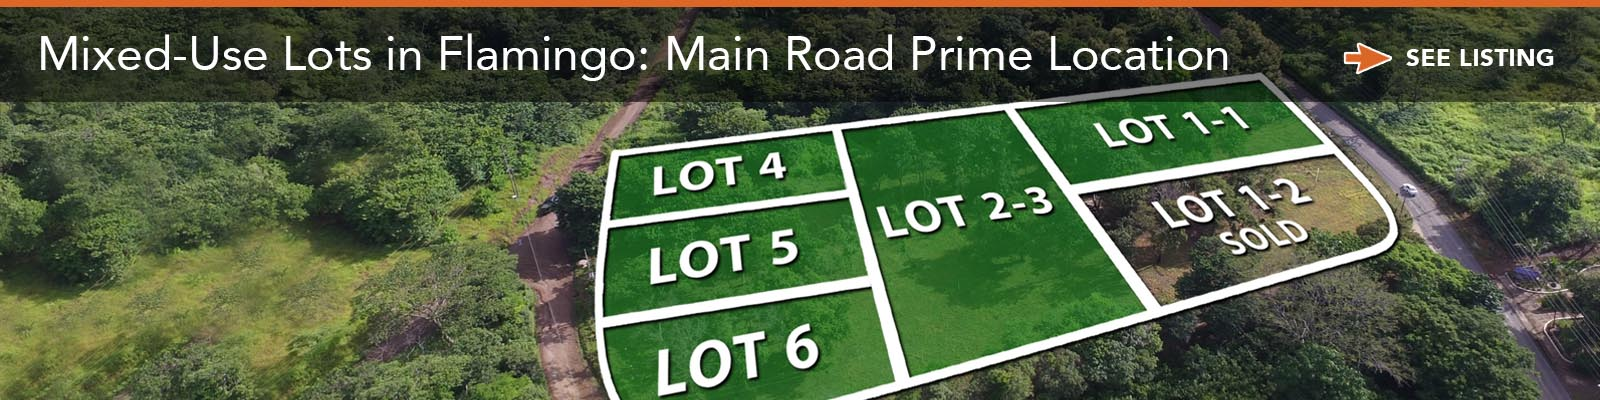 Mixed-Use Lots in Flamingo: Main Road Prime Location